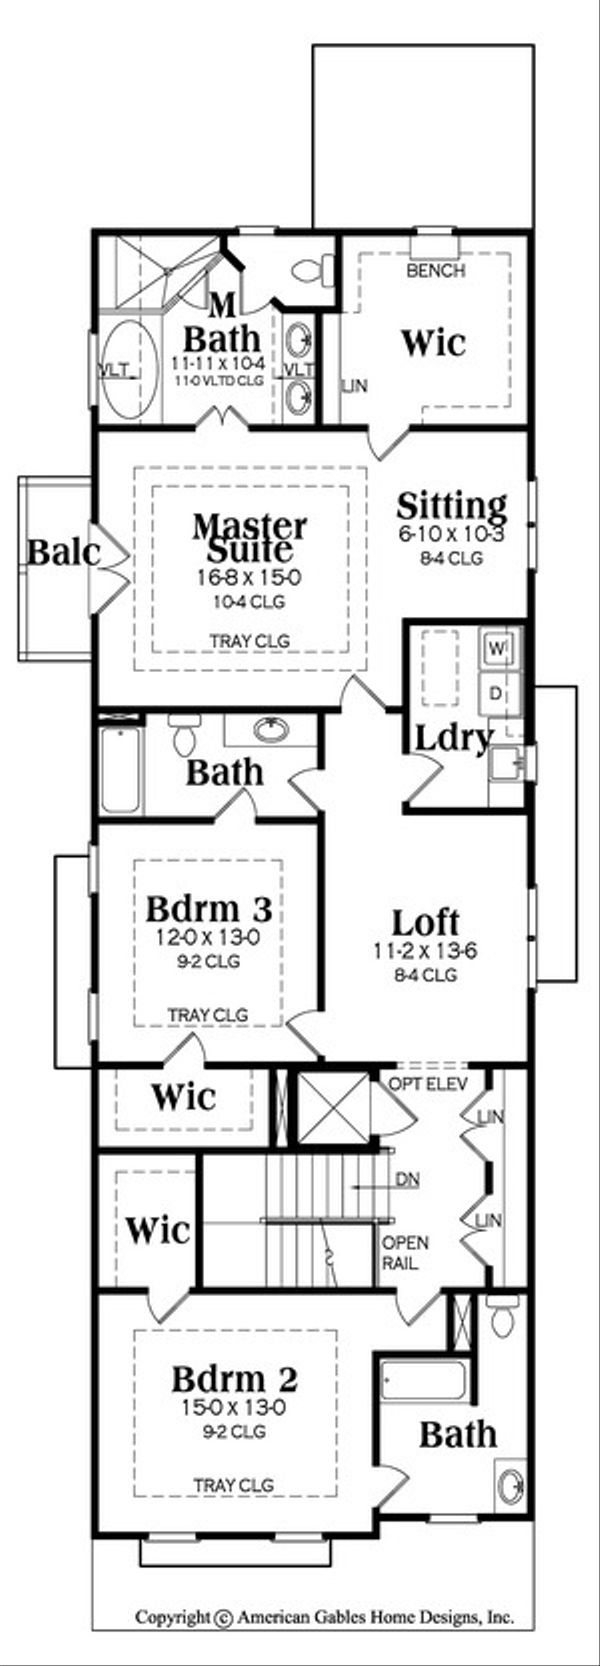 European Floor Plan - Upper Floor Plan Plan #419-283